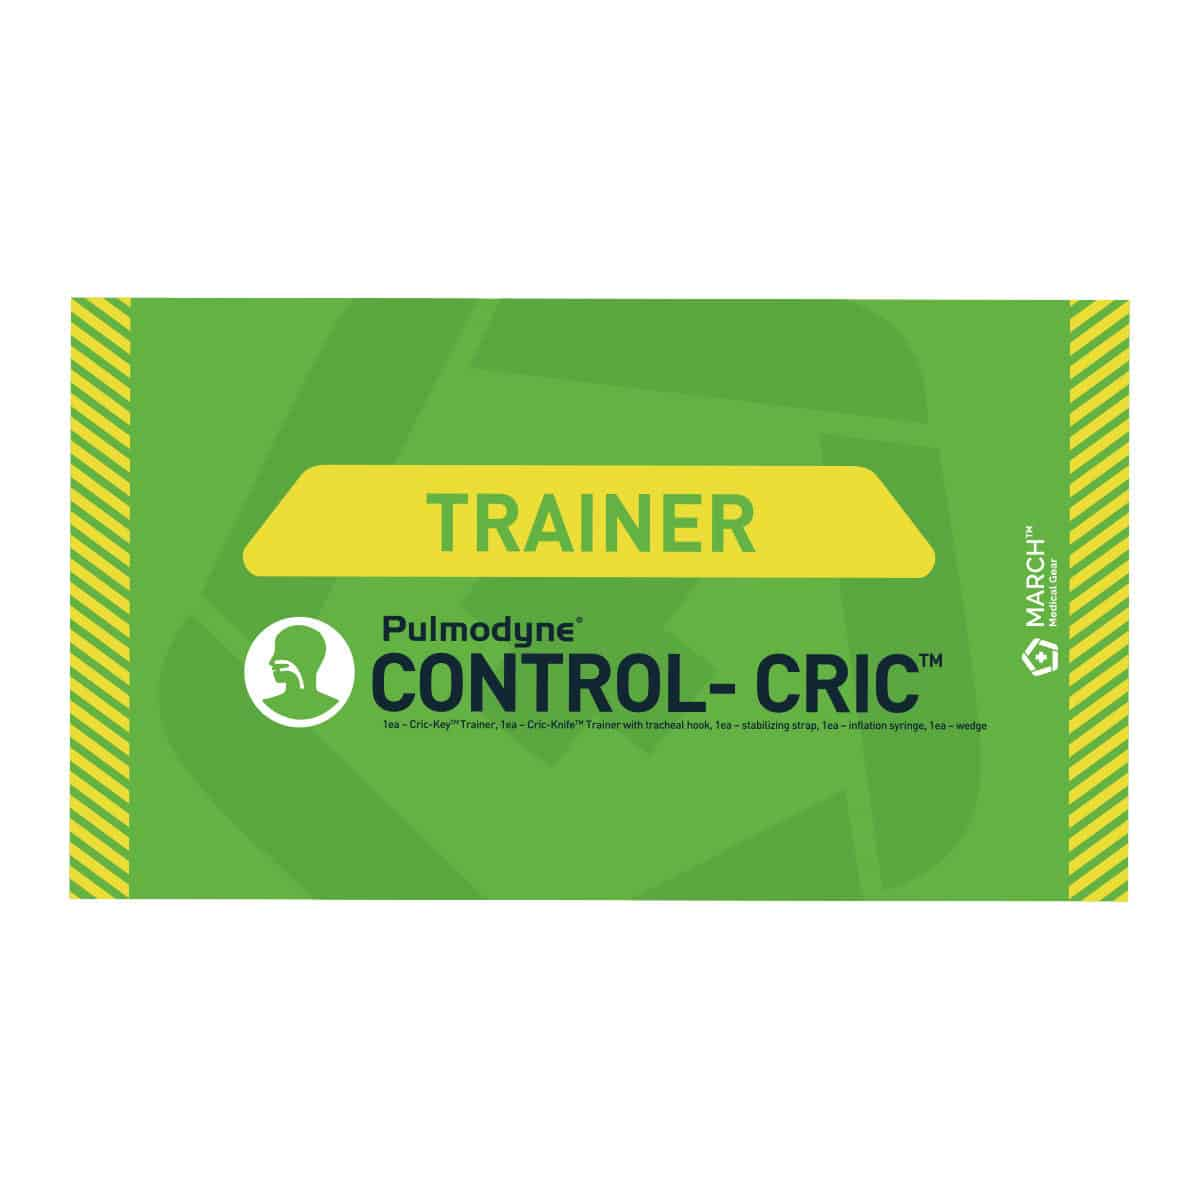 control cric tainer packaging